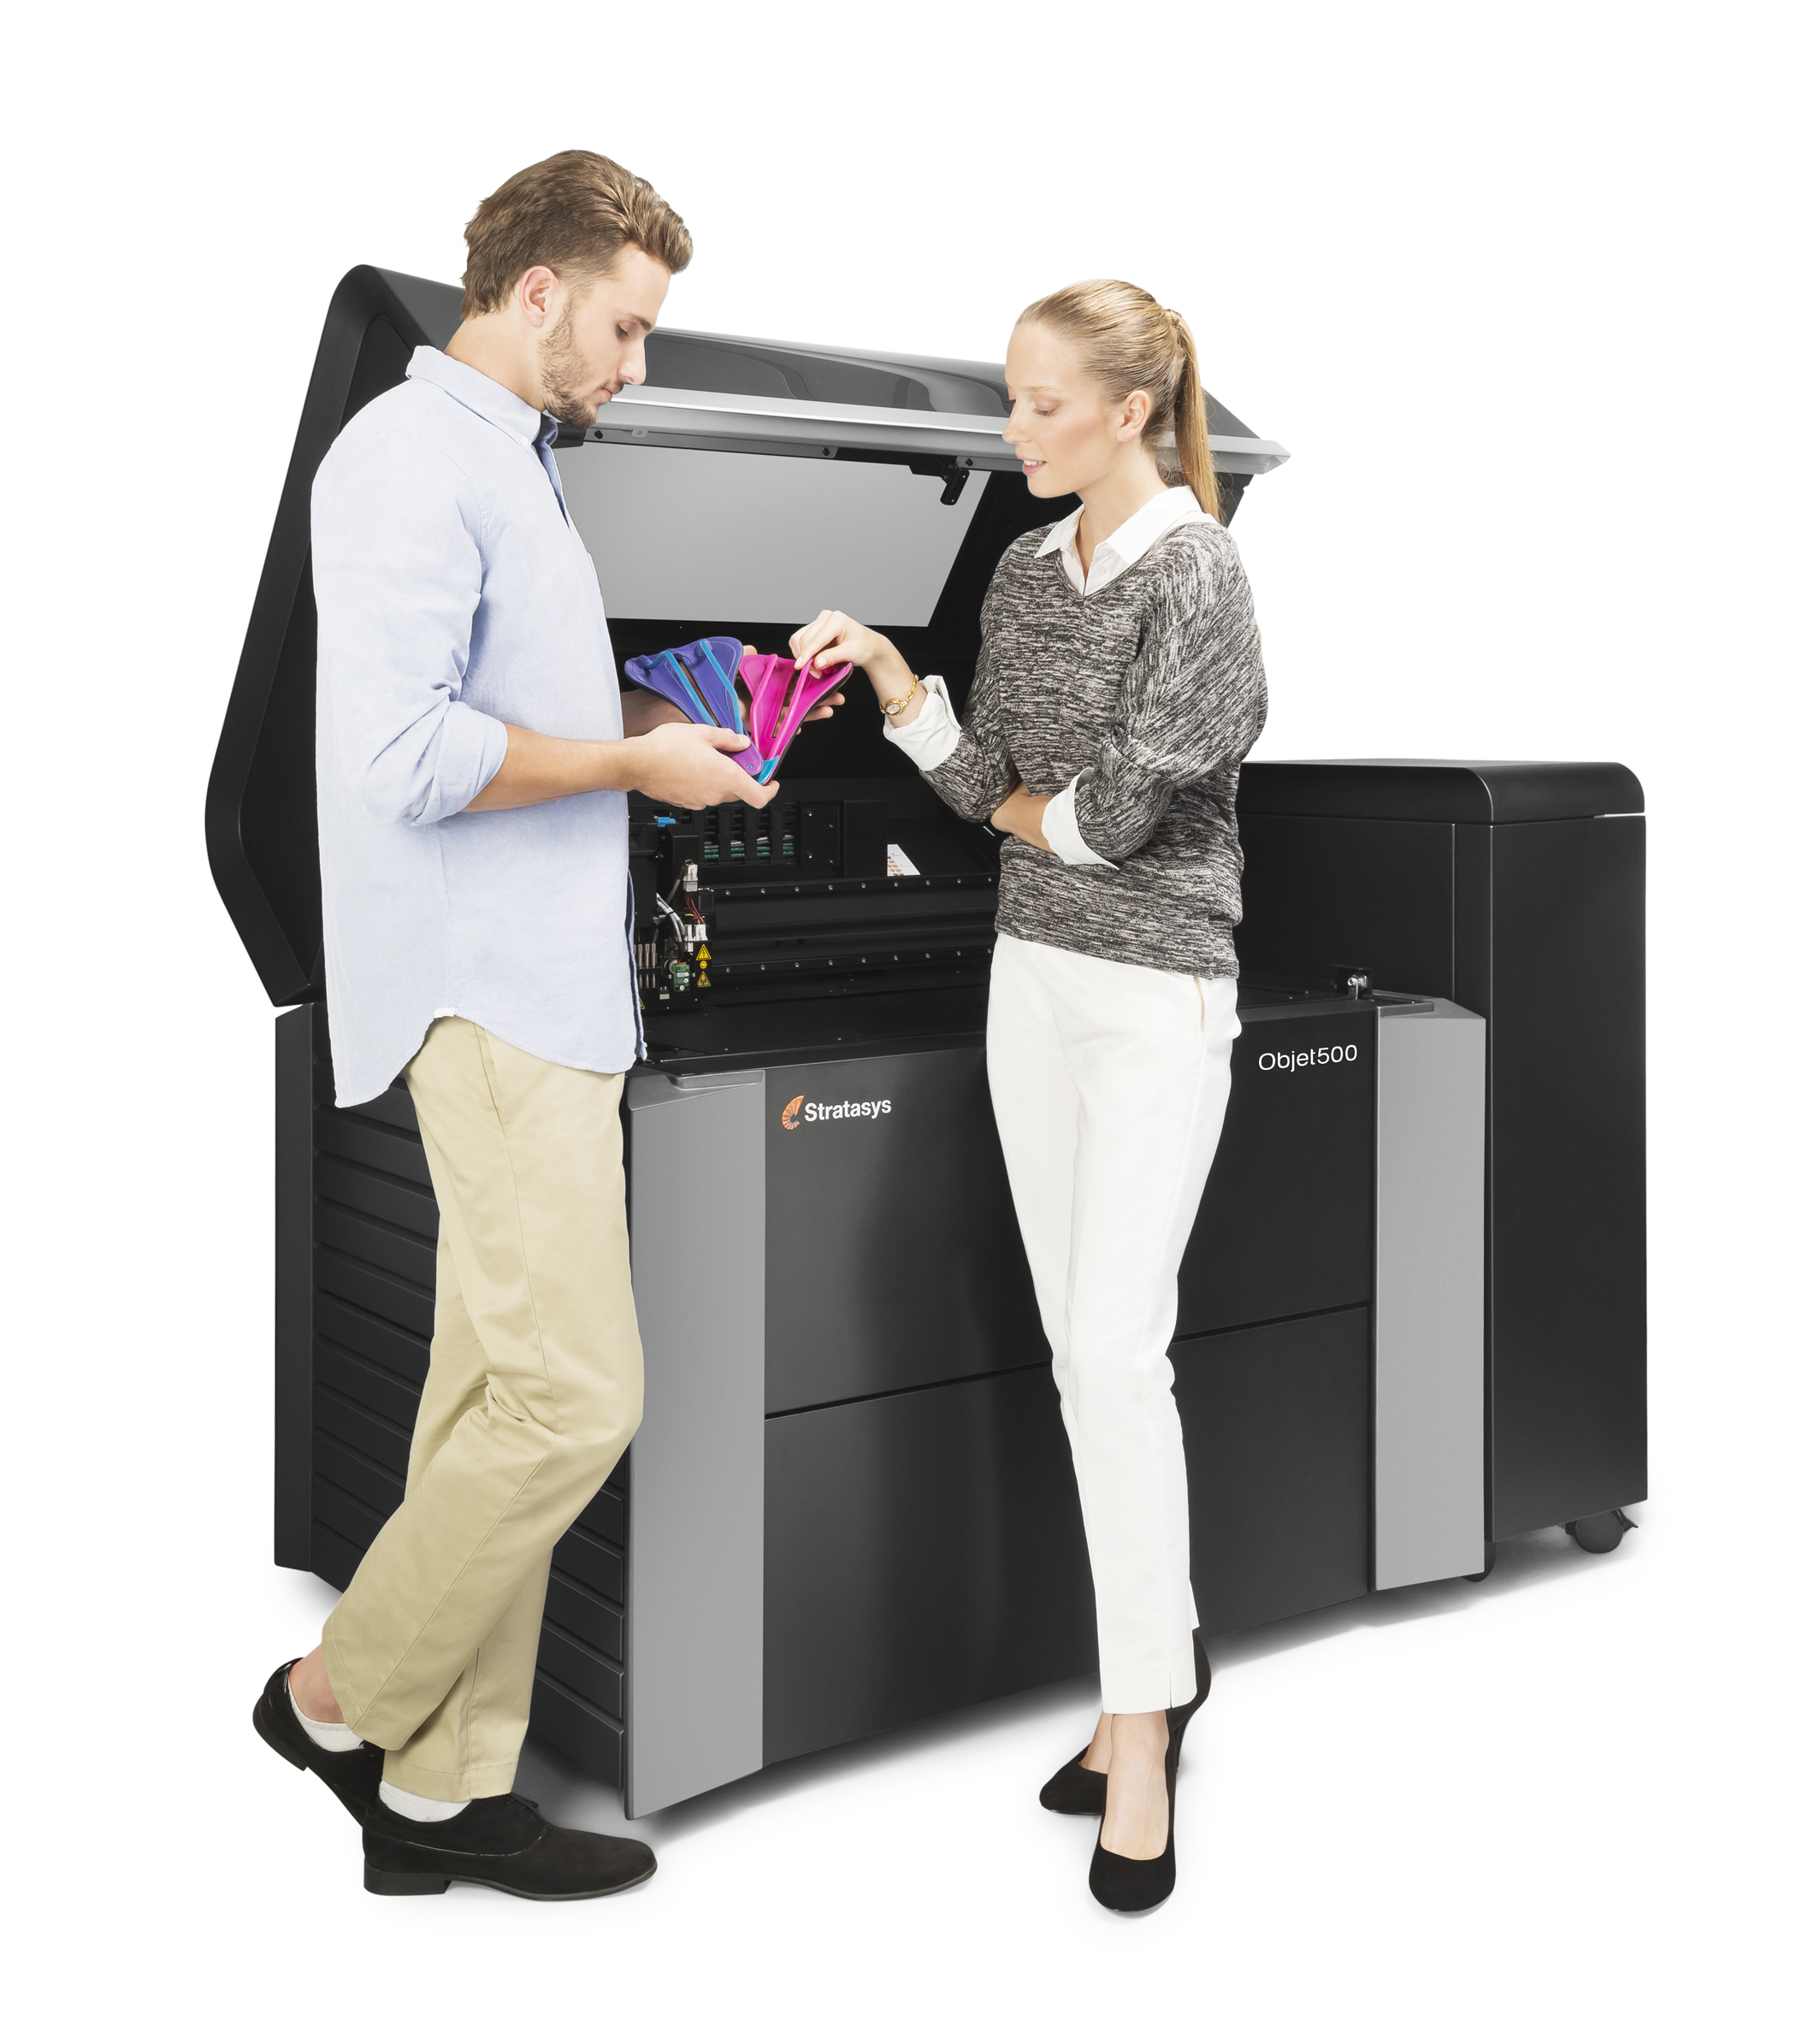 Stratasys' Enhanced Objet500 Connex3 Multi-material, Multi-color 3D Printer – Bridging Adoption Chasm with Streamlined Workflow, Greater Ease-of-Use and Better Economic Value